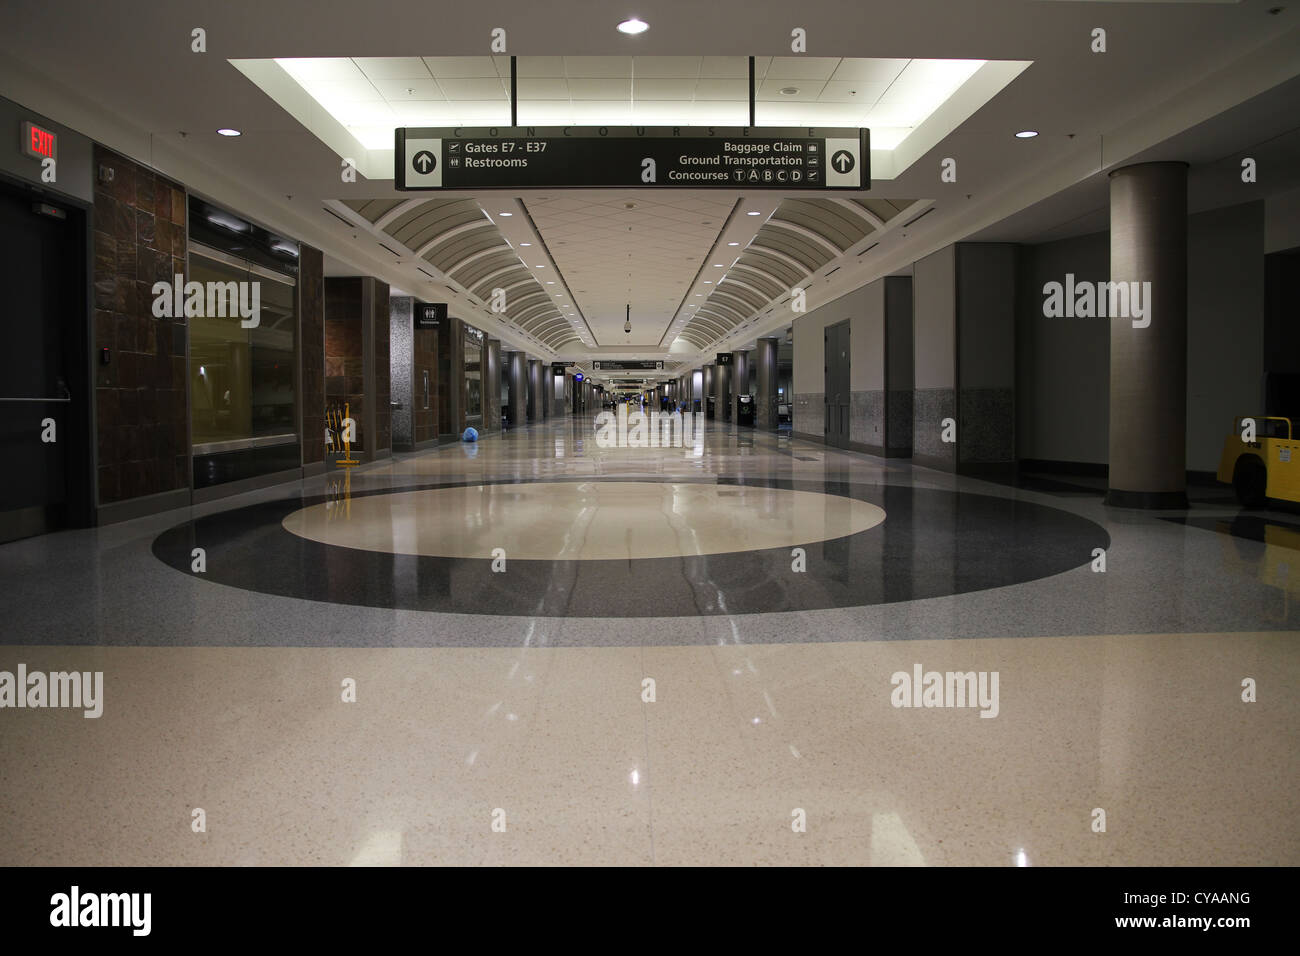 An empty airport terminal at Hartsfield-Jackson Airport in Atlanta, which is the busiest airport in the world. - Stock Image